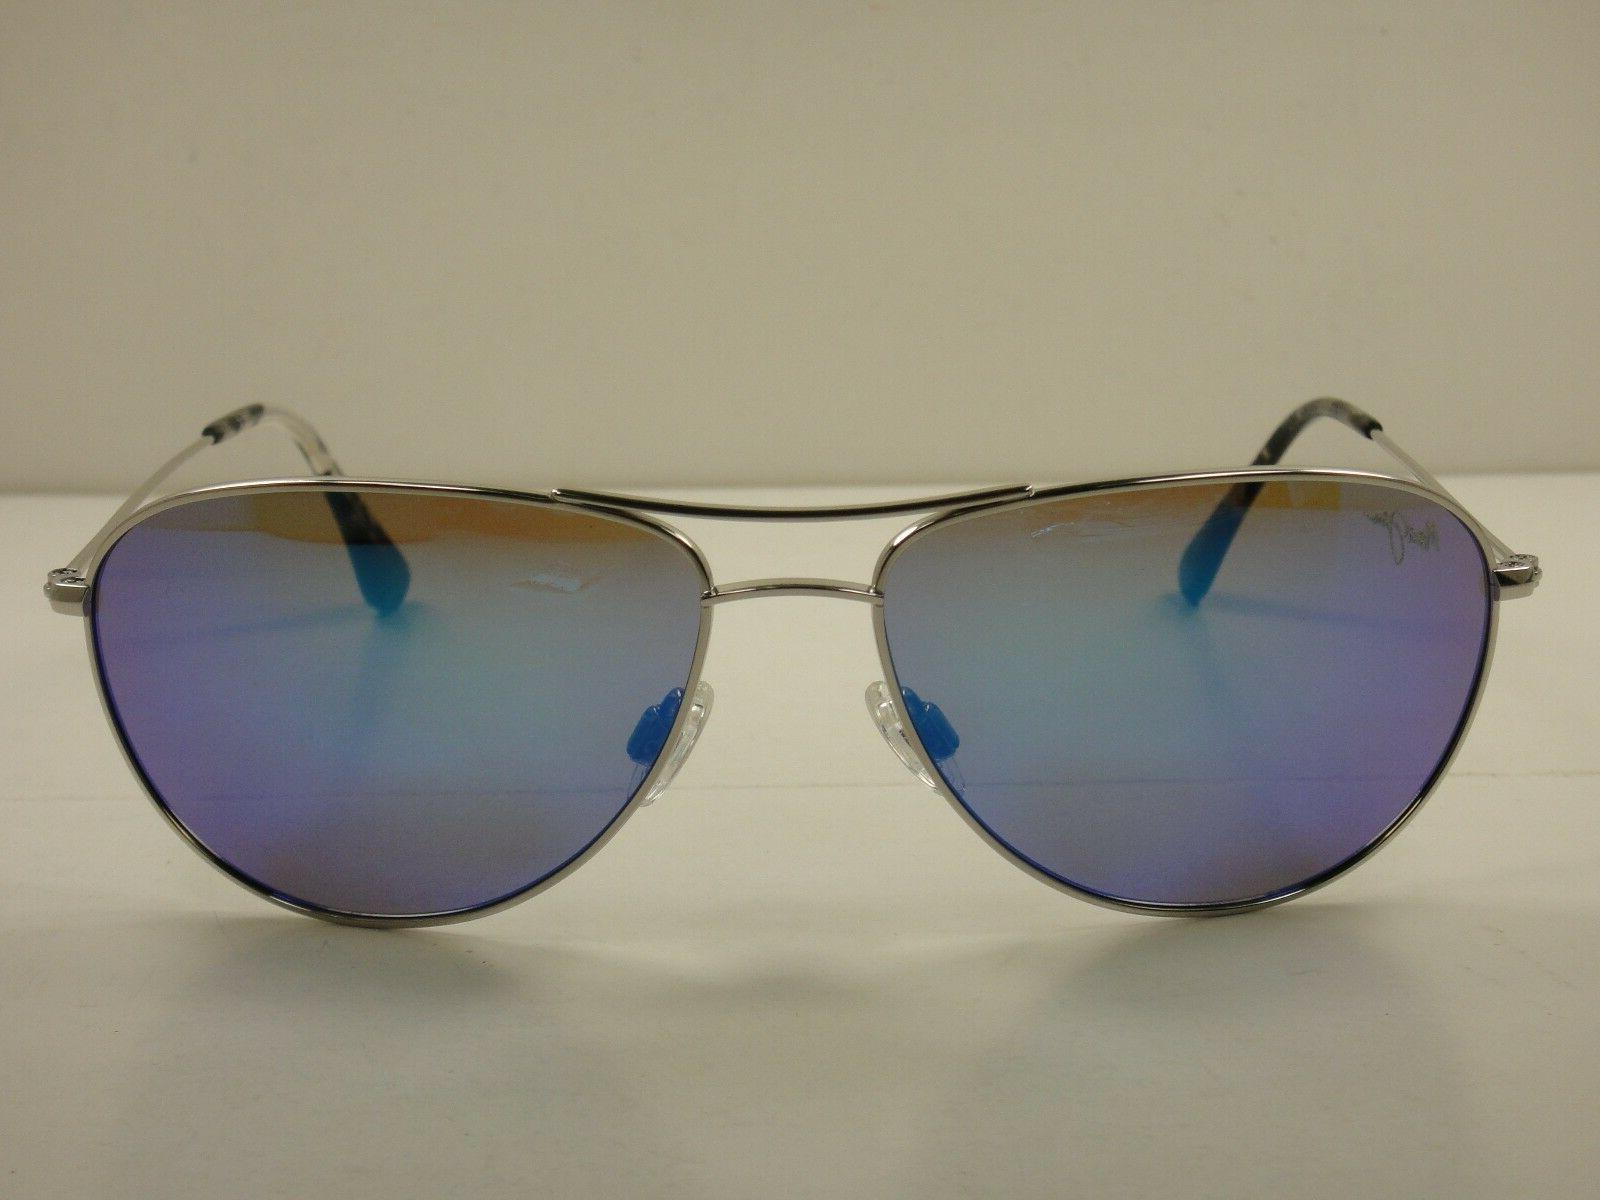 MAUI POLARIZED B772-17 HAWAII LENS NEW